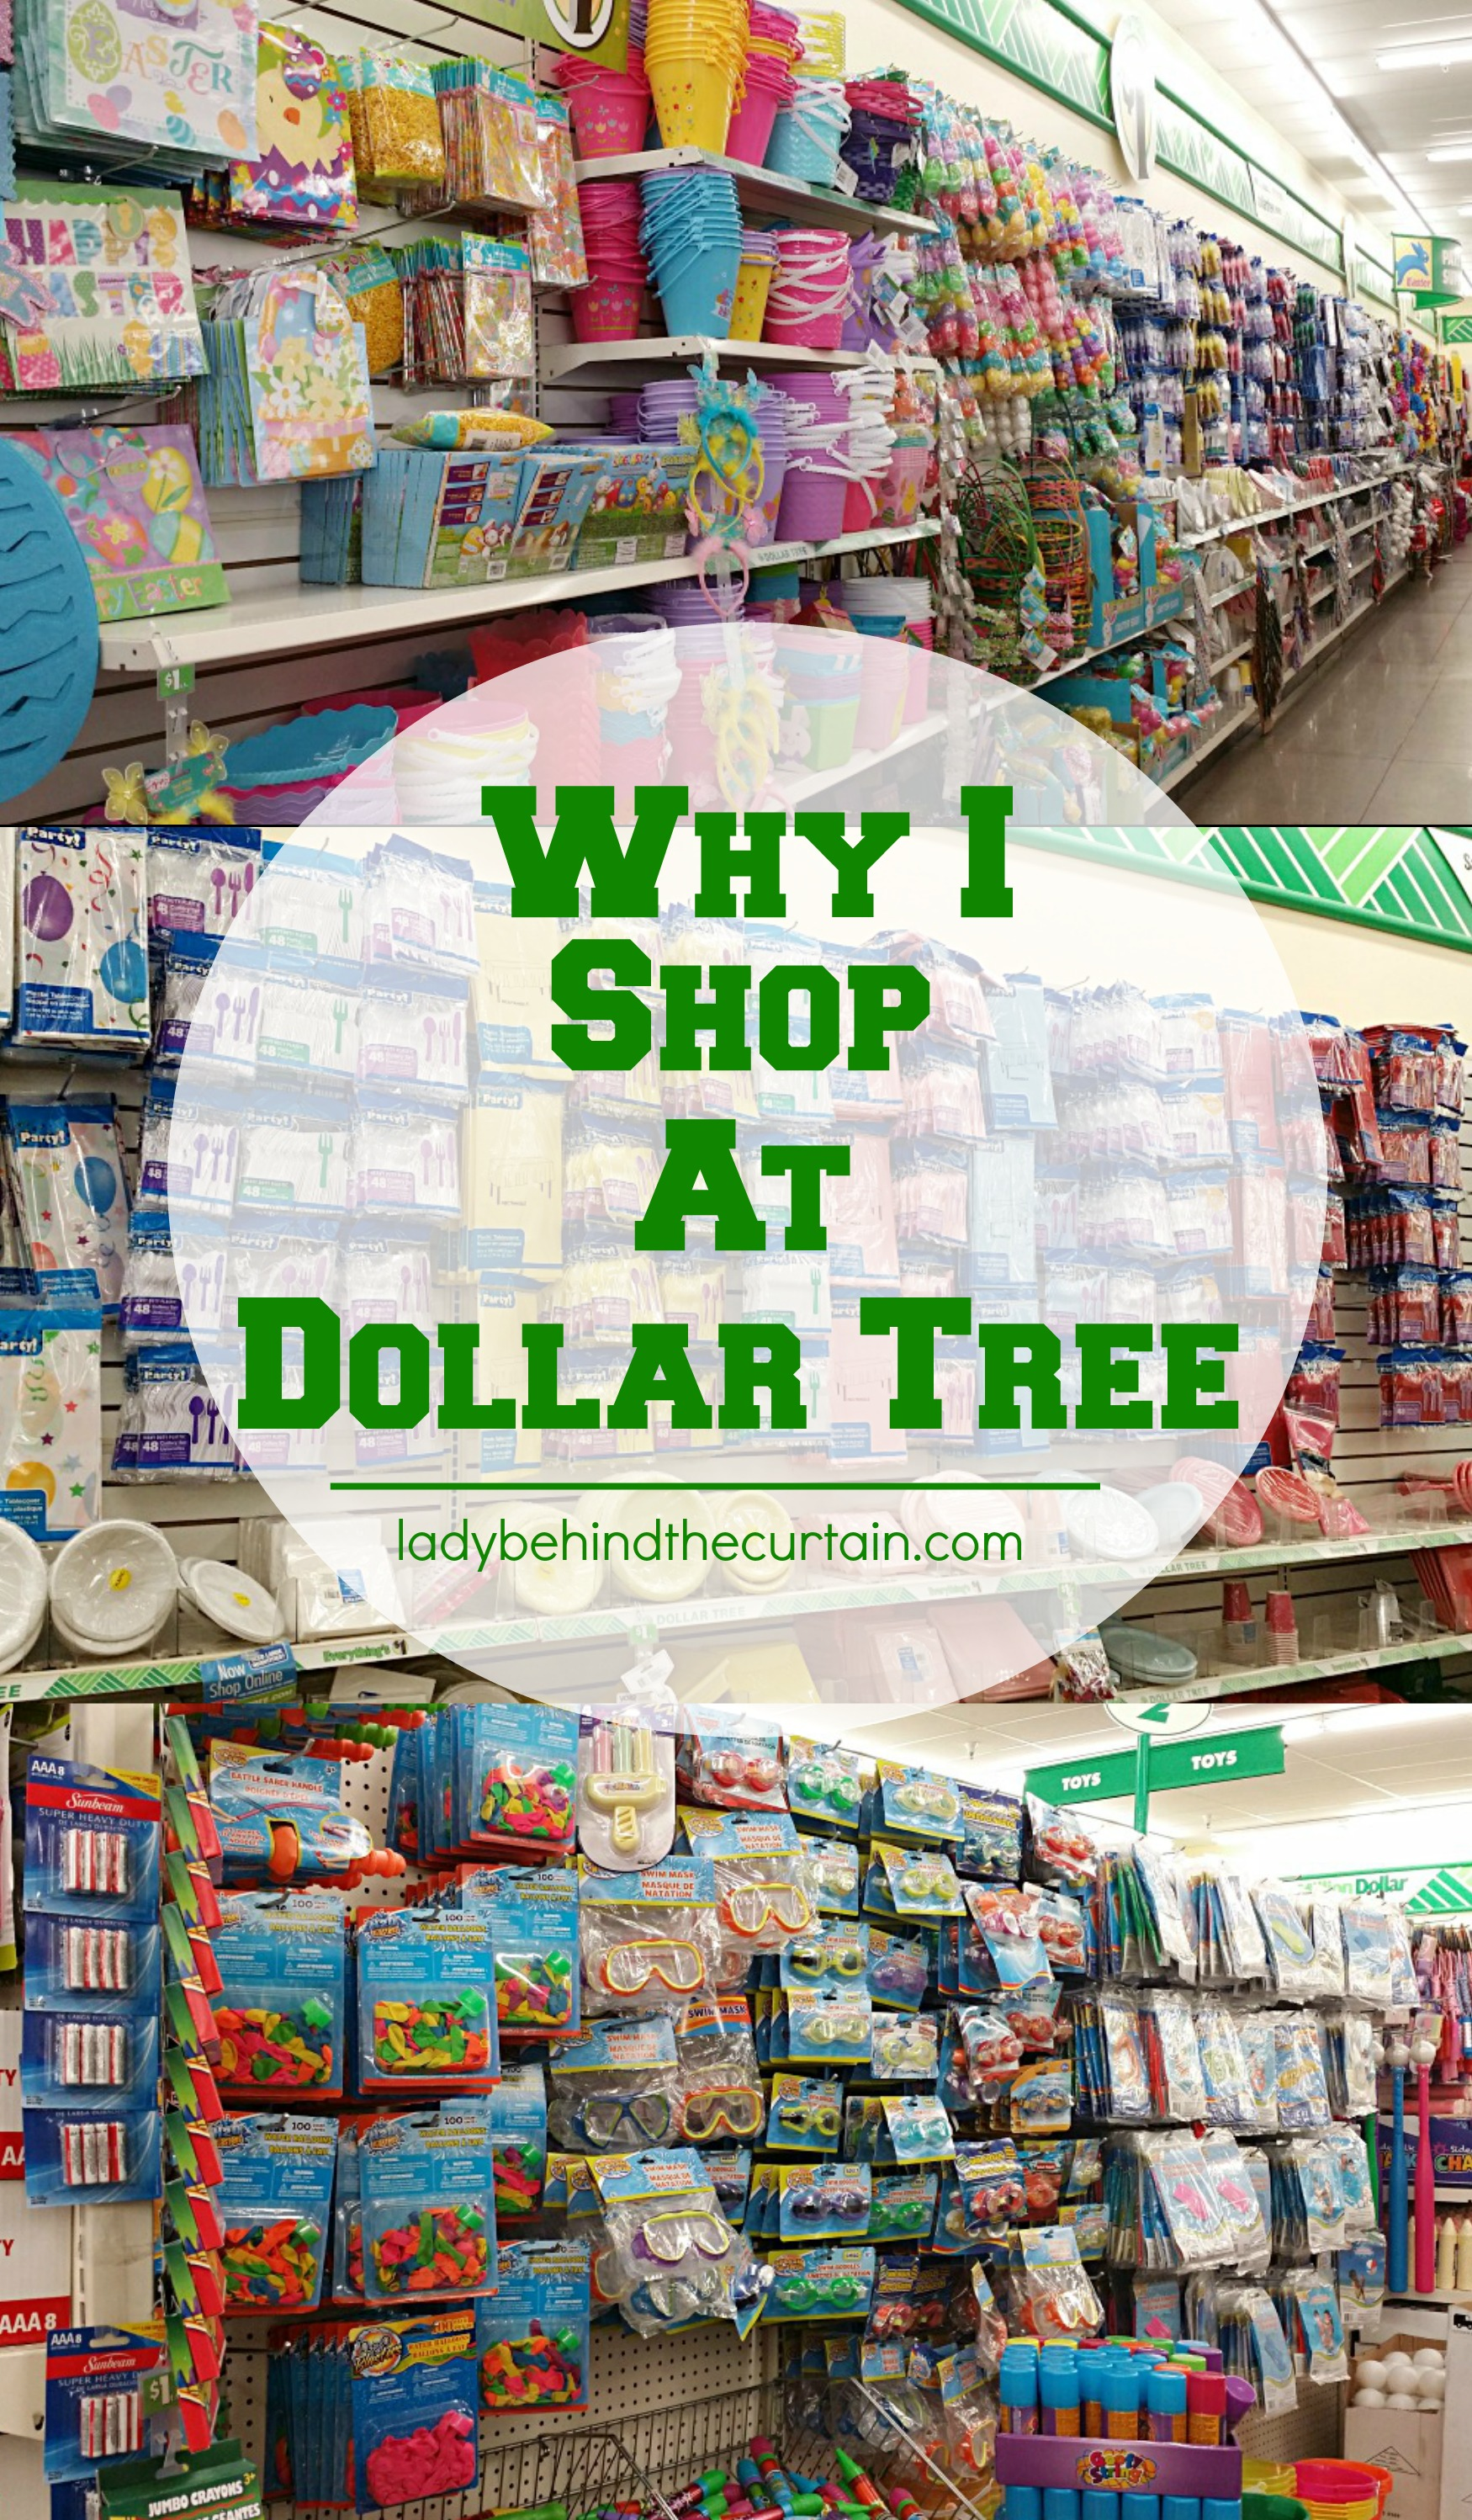 Why I Shop at Dollar Tree